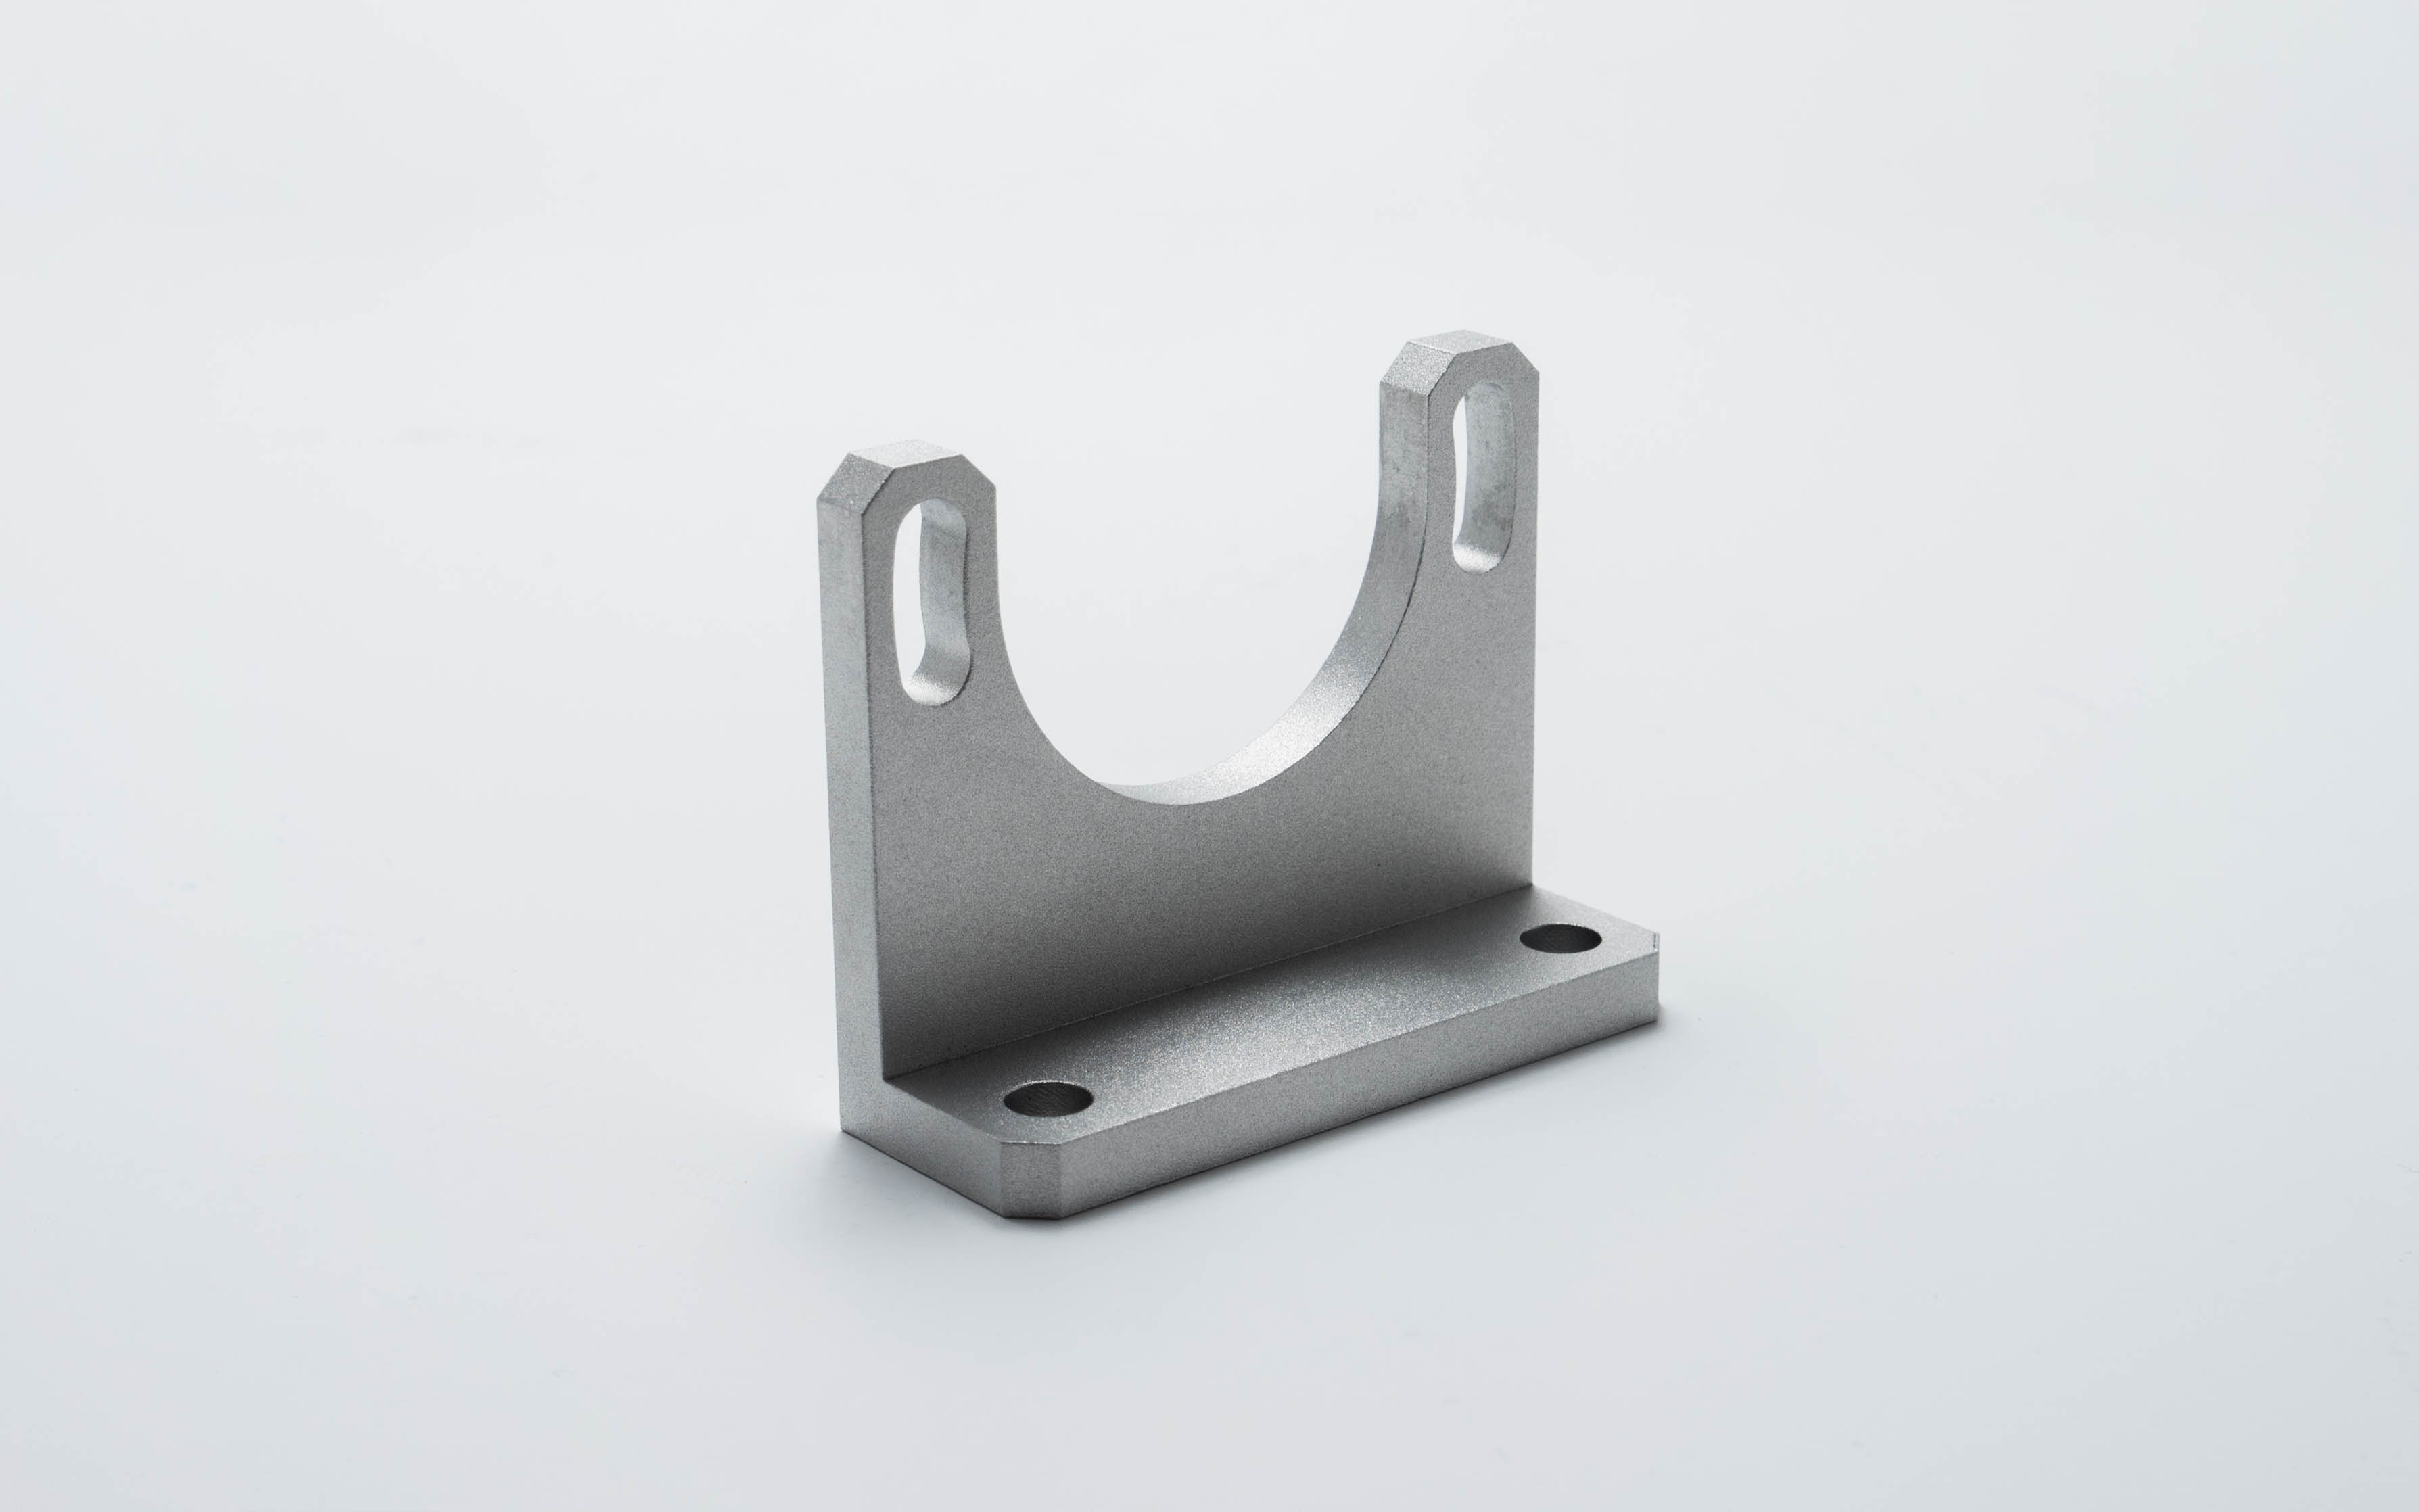 A typical part machined with CNC millng